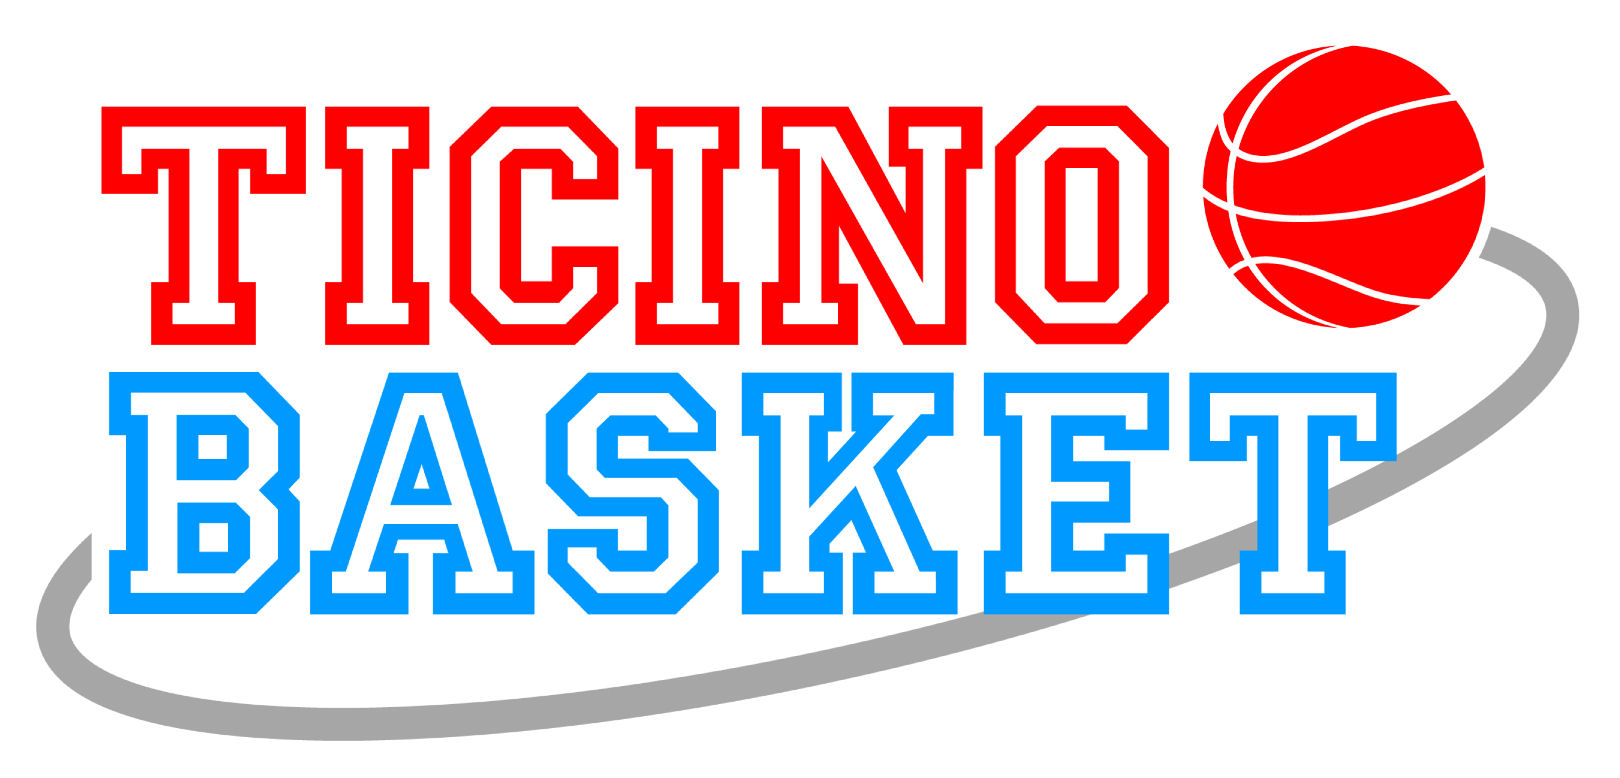 LogoTicino-Basket_Color 2.jpg